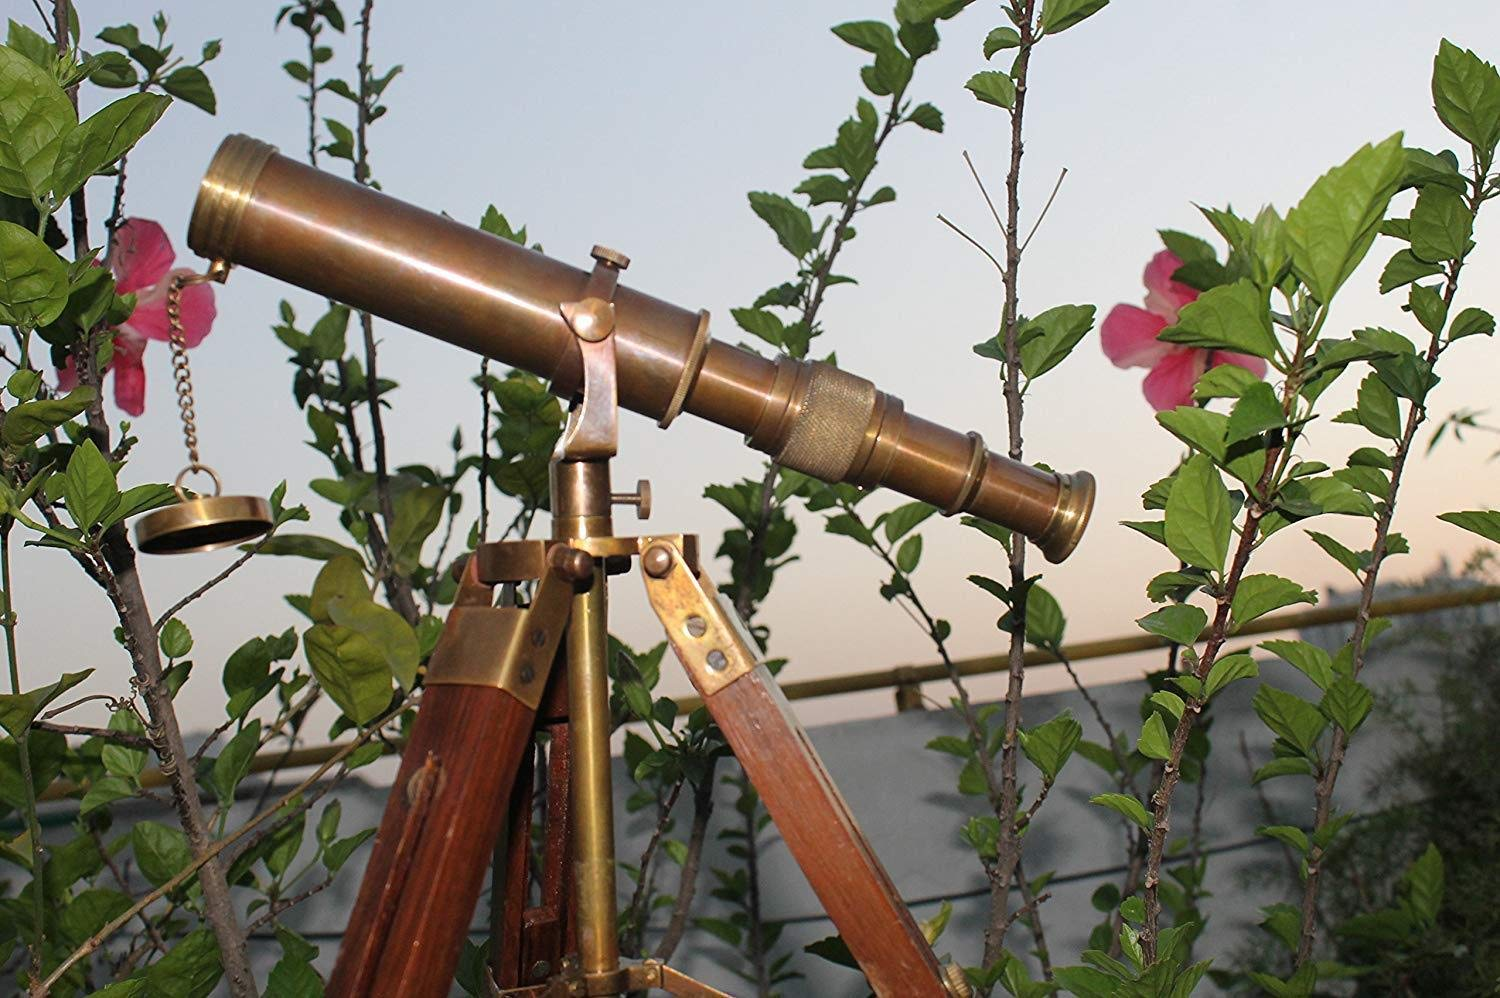 Arsh Nautical Vintage Antique Decorative Table Classy Brass Telescope with Adjustable Tripod Stand A